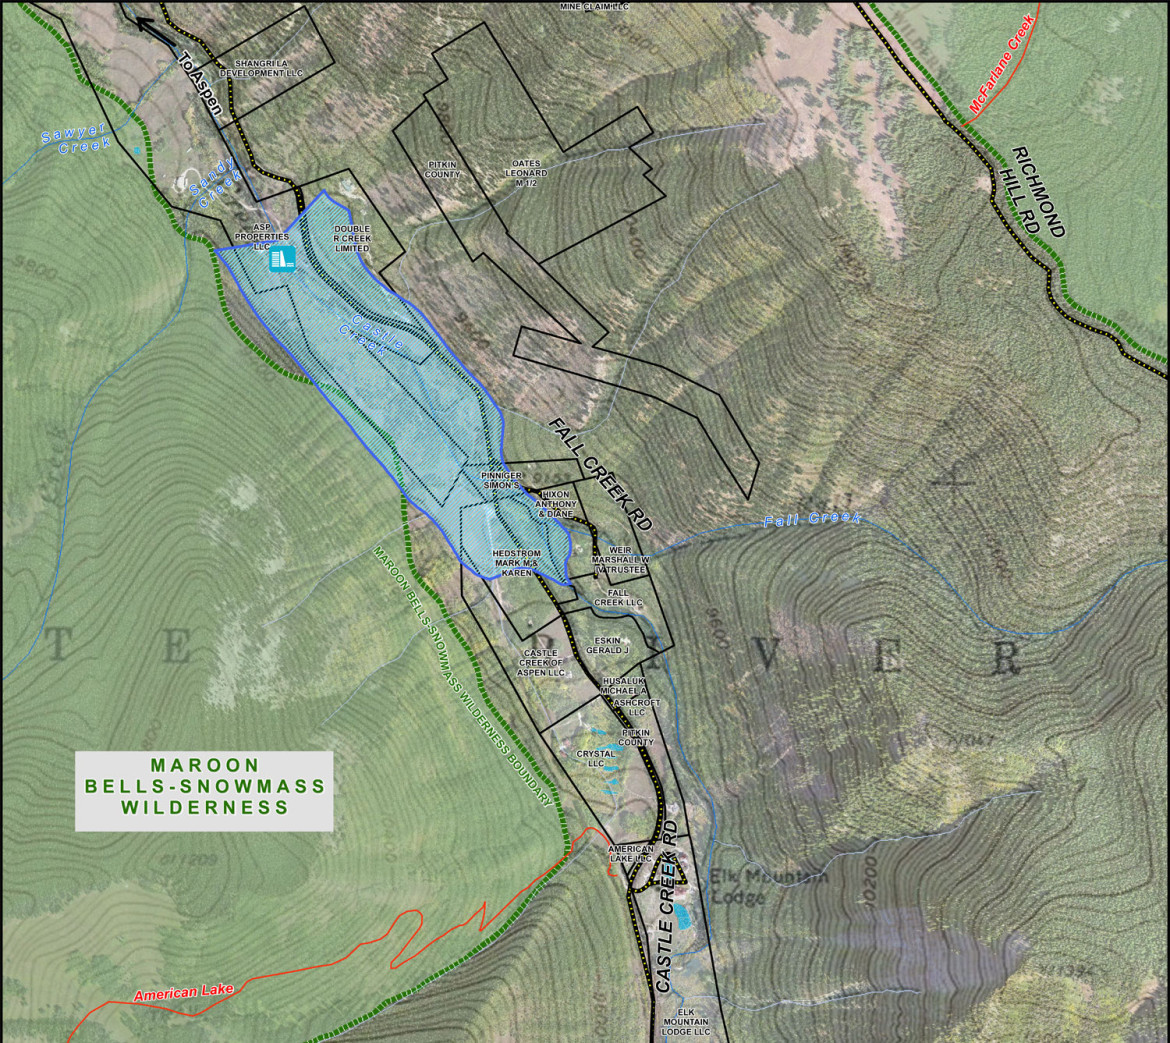 A map showing the location of the potential Castle Creek Reservoir. The extend of the reservoir has been slightly modified to flood a smaller portion of private property owned by adjacent neighbors.